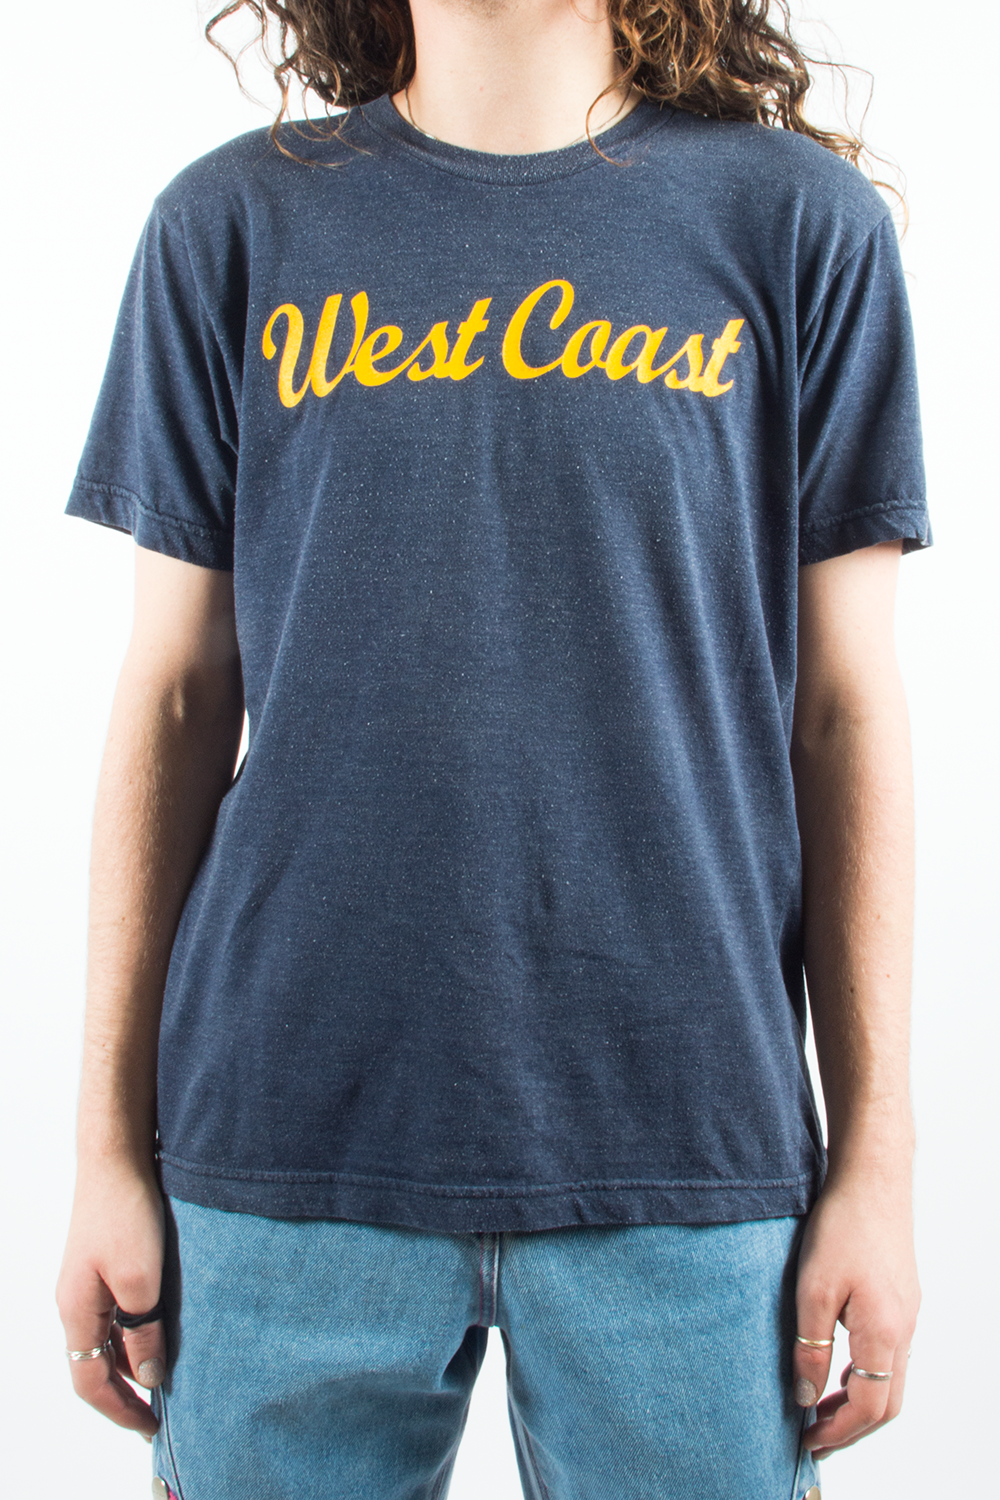 west coast t-shirt in navy blue